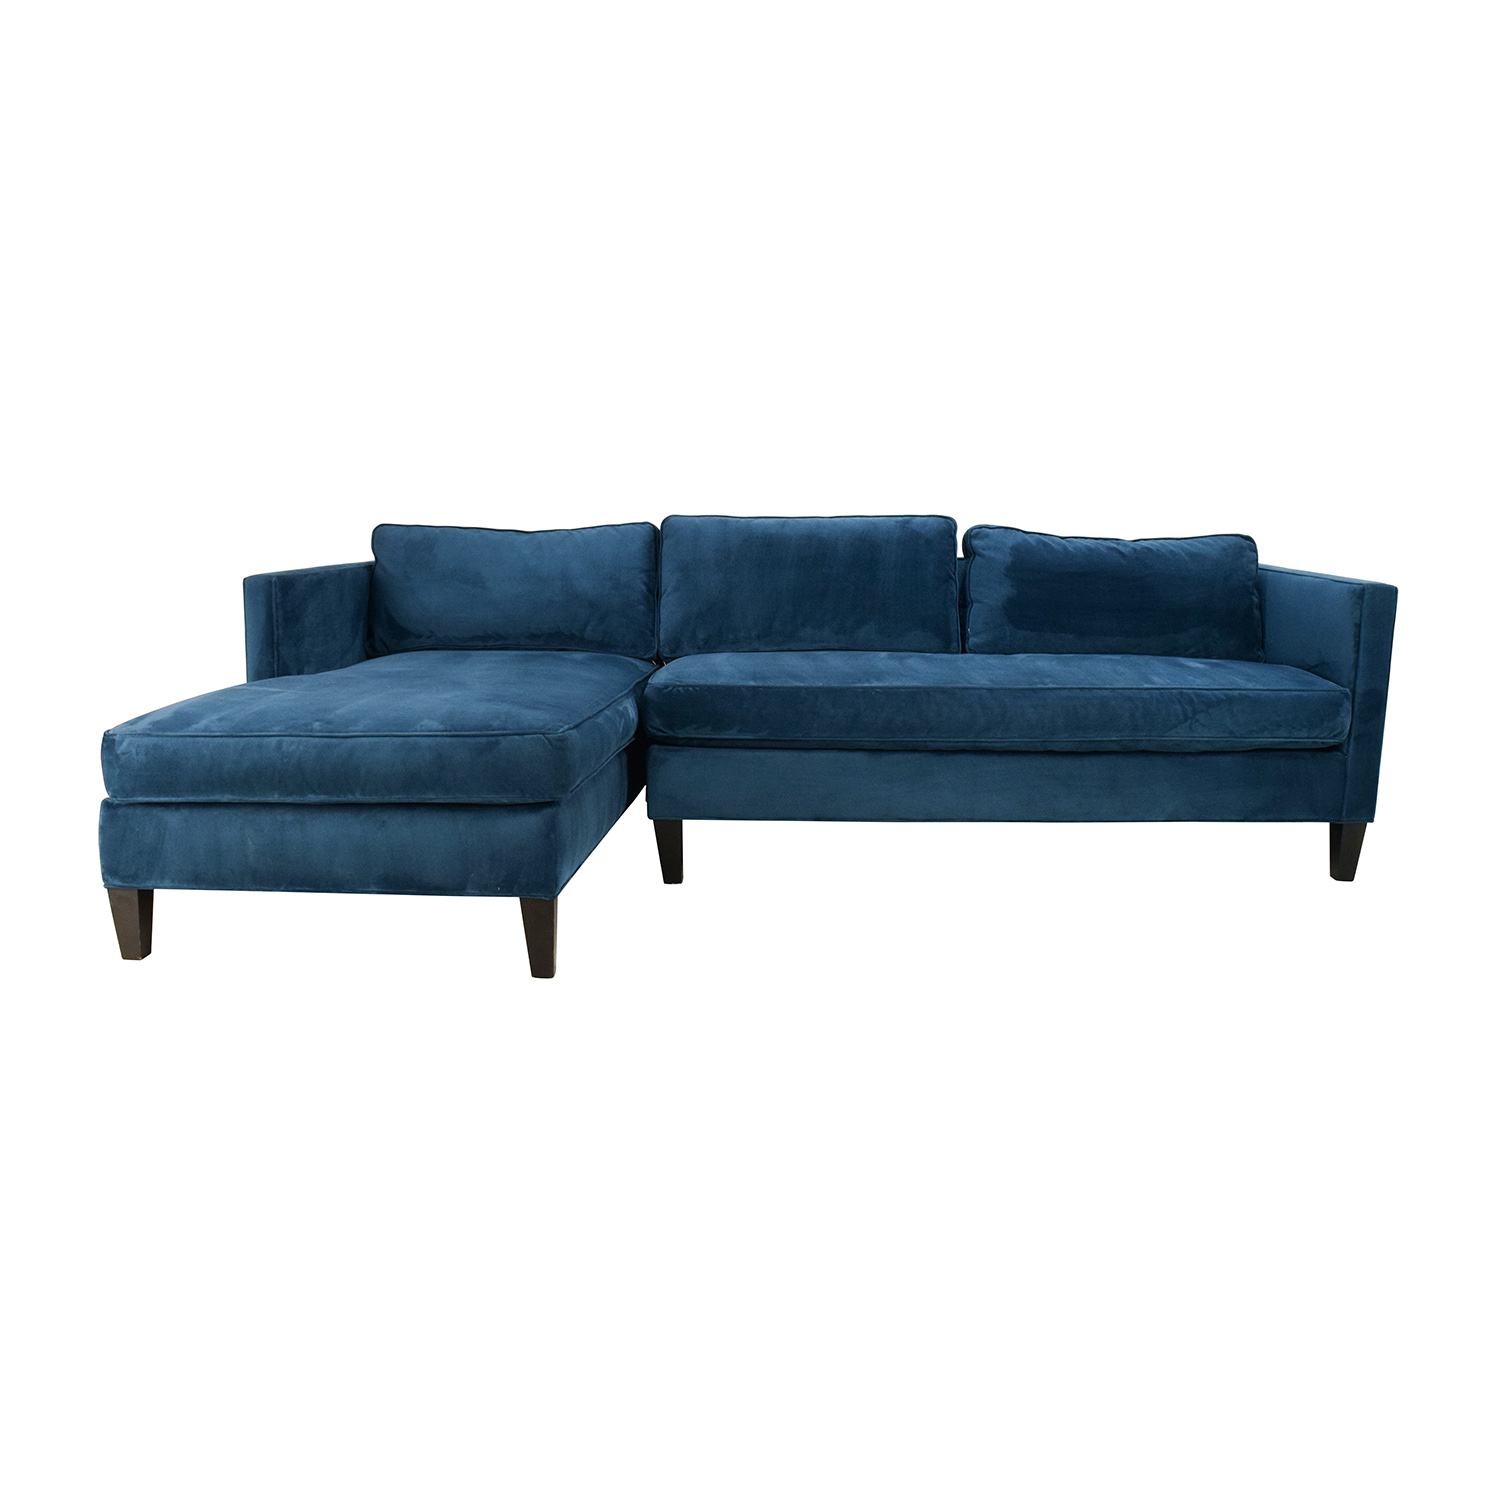 West Elm Dunham Sectional Sofa sale